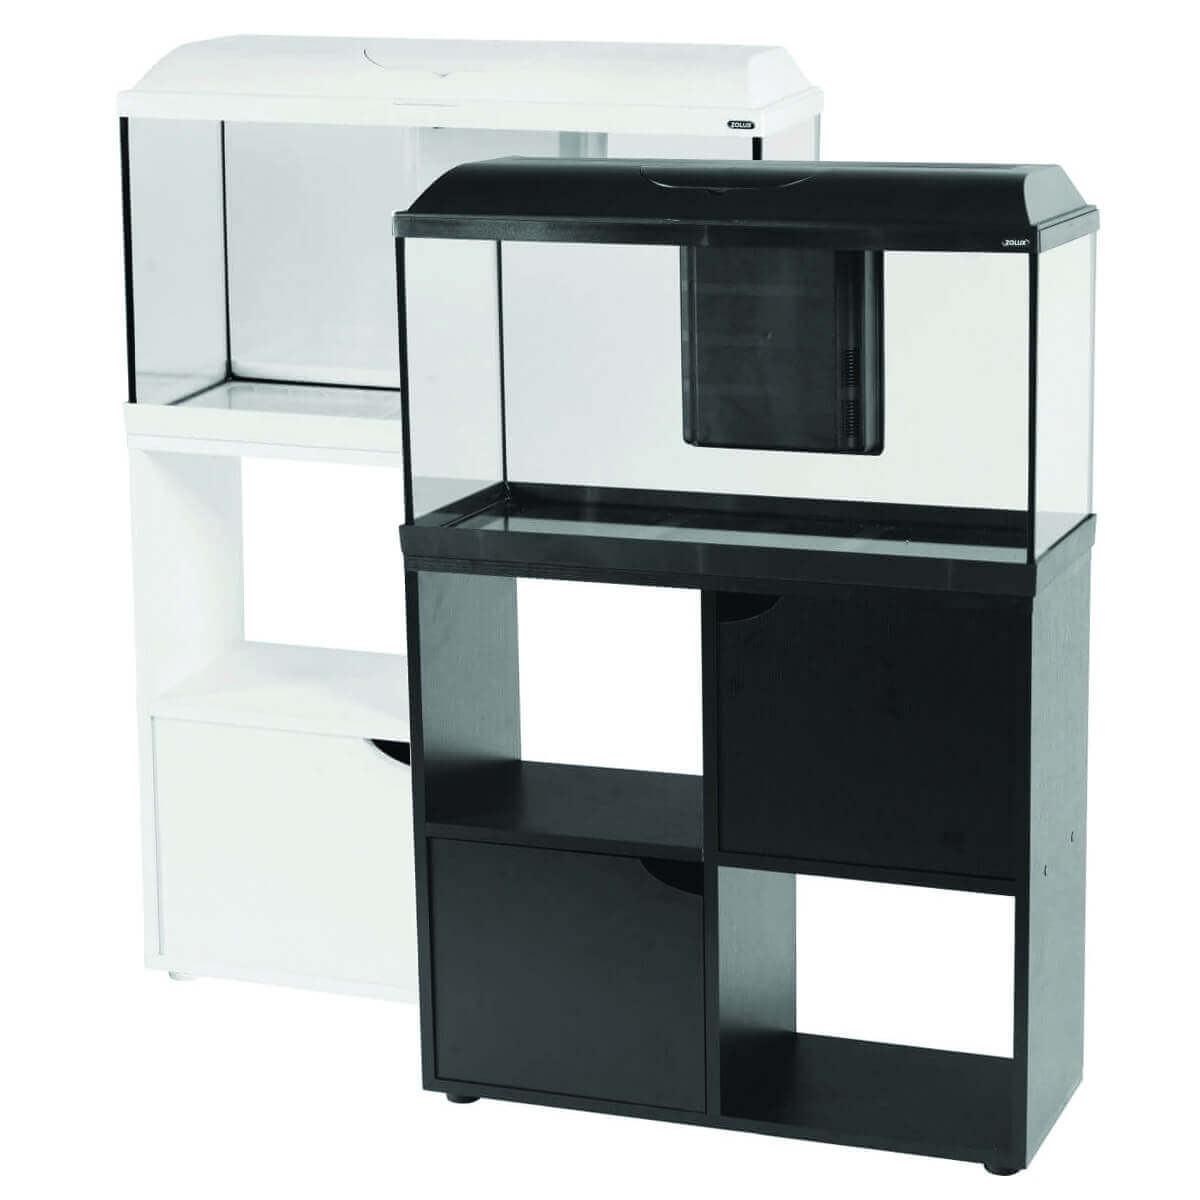 meuble aquarium iseo 80 x 30 cm aquarium et meuble. Black Bedroom Furniture Sets. Home Design Ideas